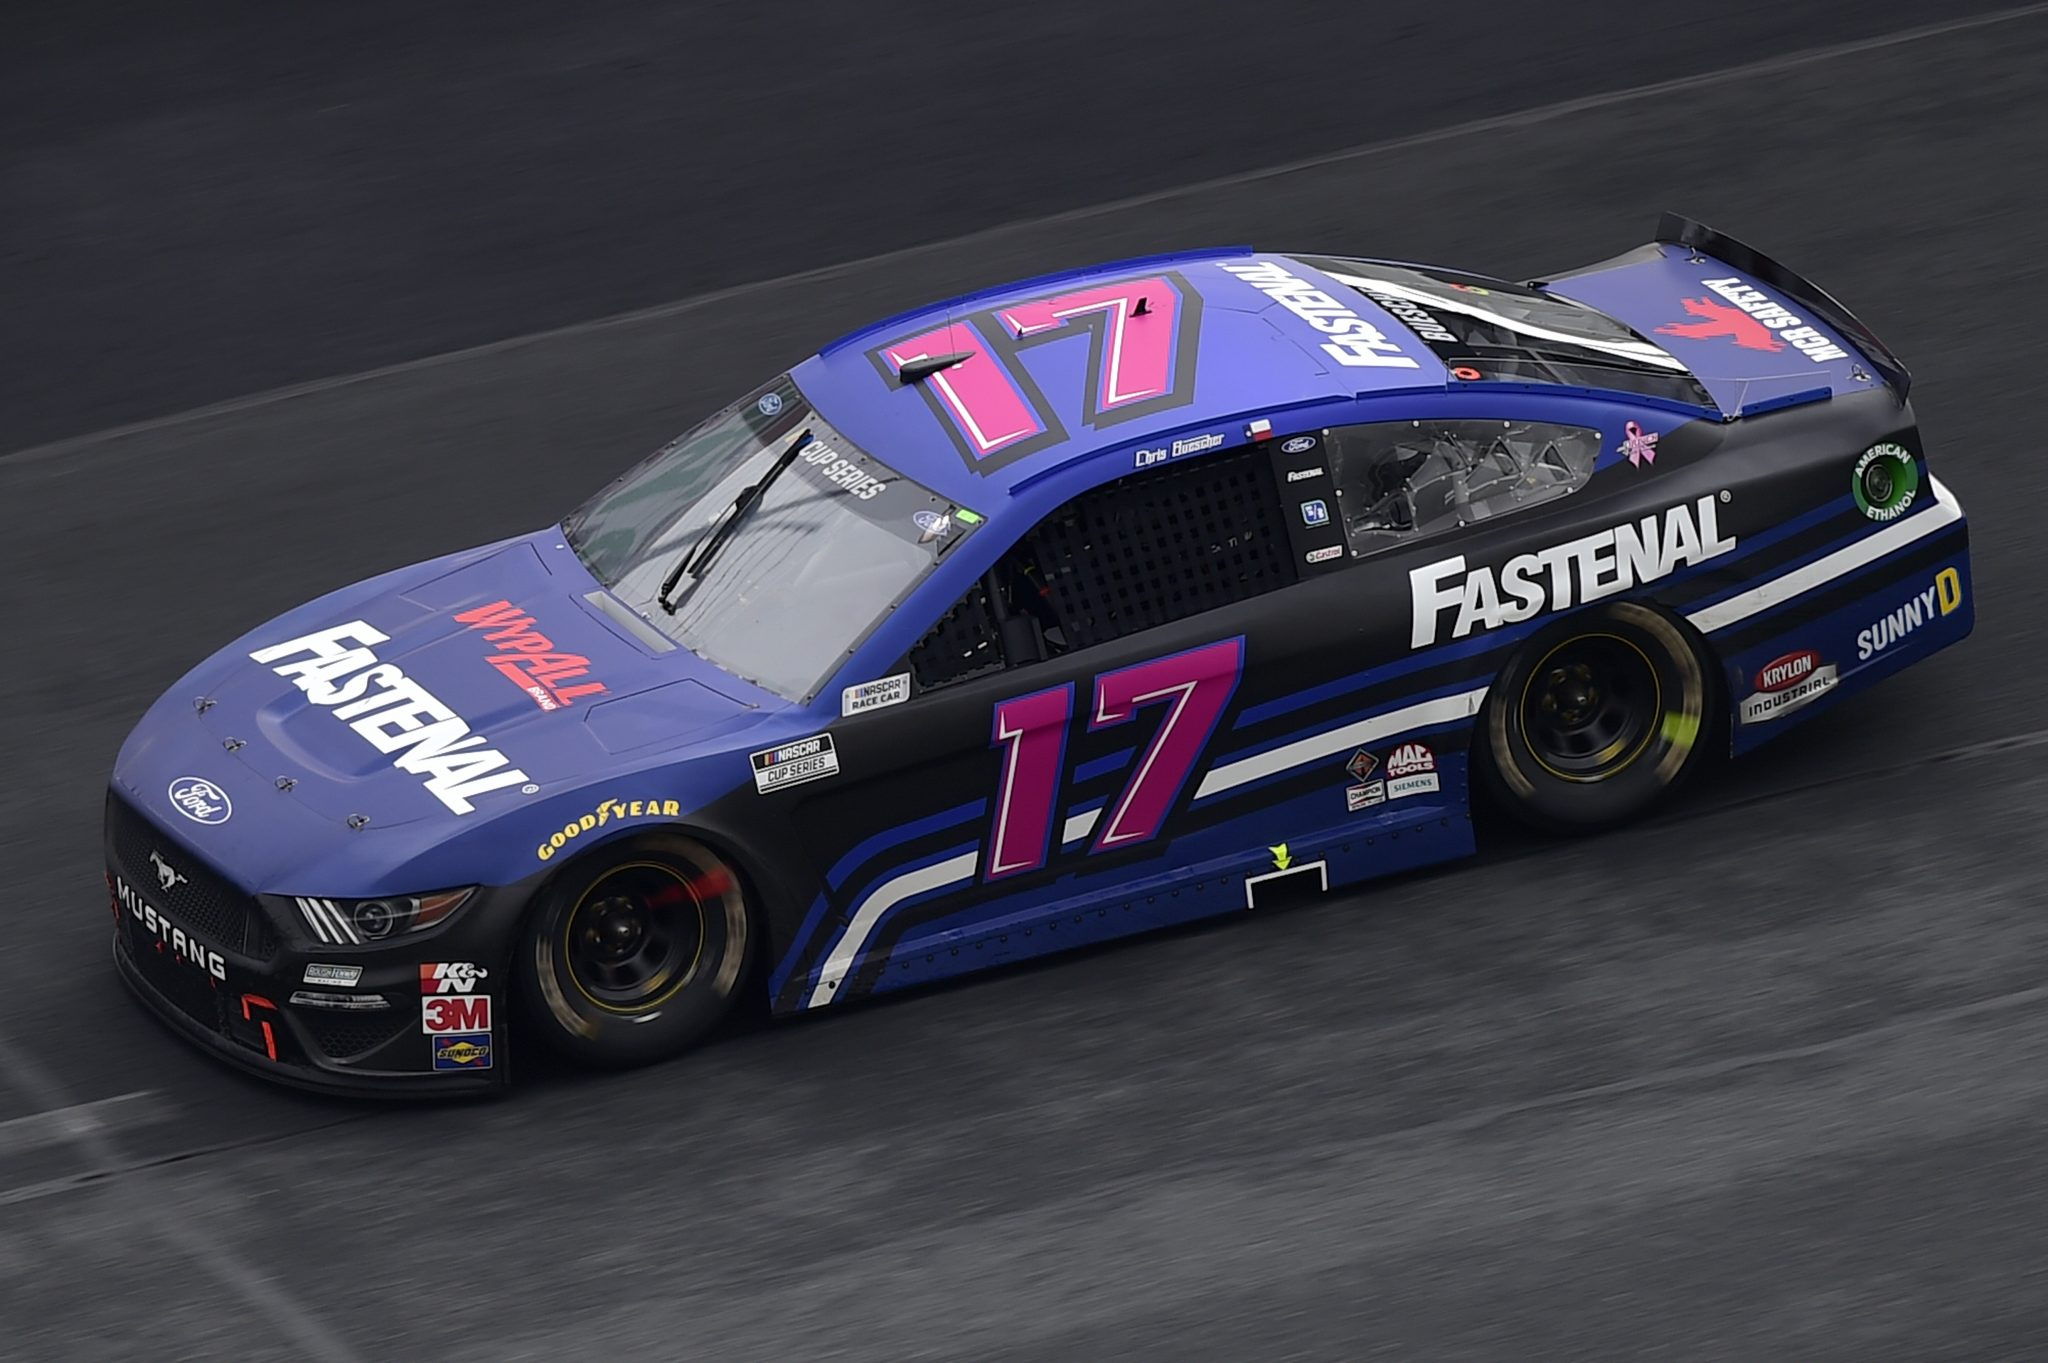 CONCORD, NORTH CAROLINA - OCTOBER 11: Chris Buescher, driver of the #17 Fastenal Ford, drives during the NASCAR Cup Series Bank of America ROVAL 400 at Charlotte Motor Speedway on October 11, 2020 in Concord, North Carolina. (Photo by Jared C. Tilton/Getty Images) | Getty Images